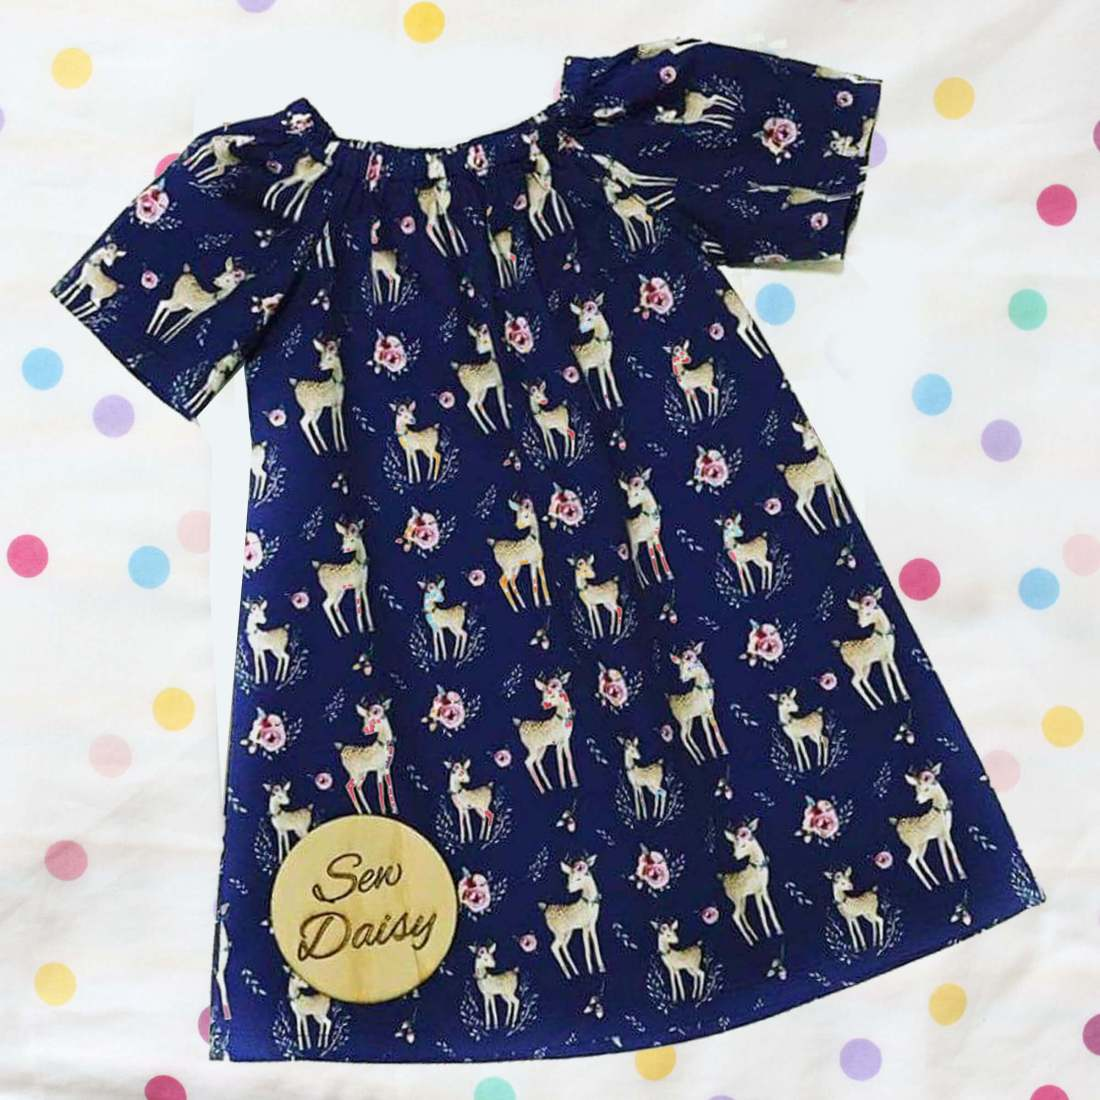 sew-daisy-handmade-girls-dress